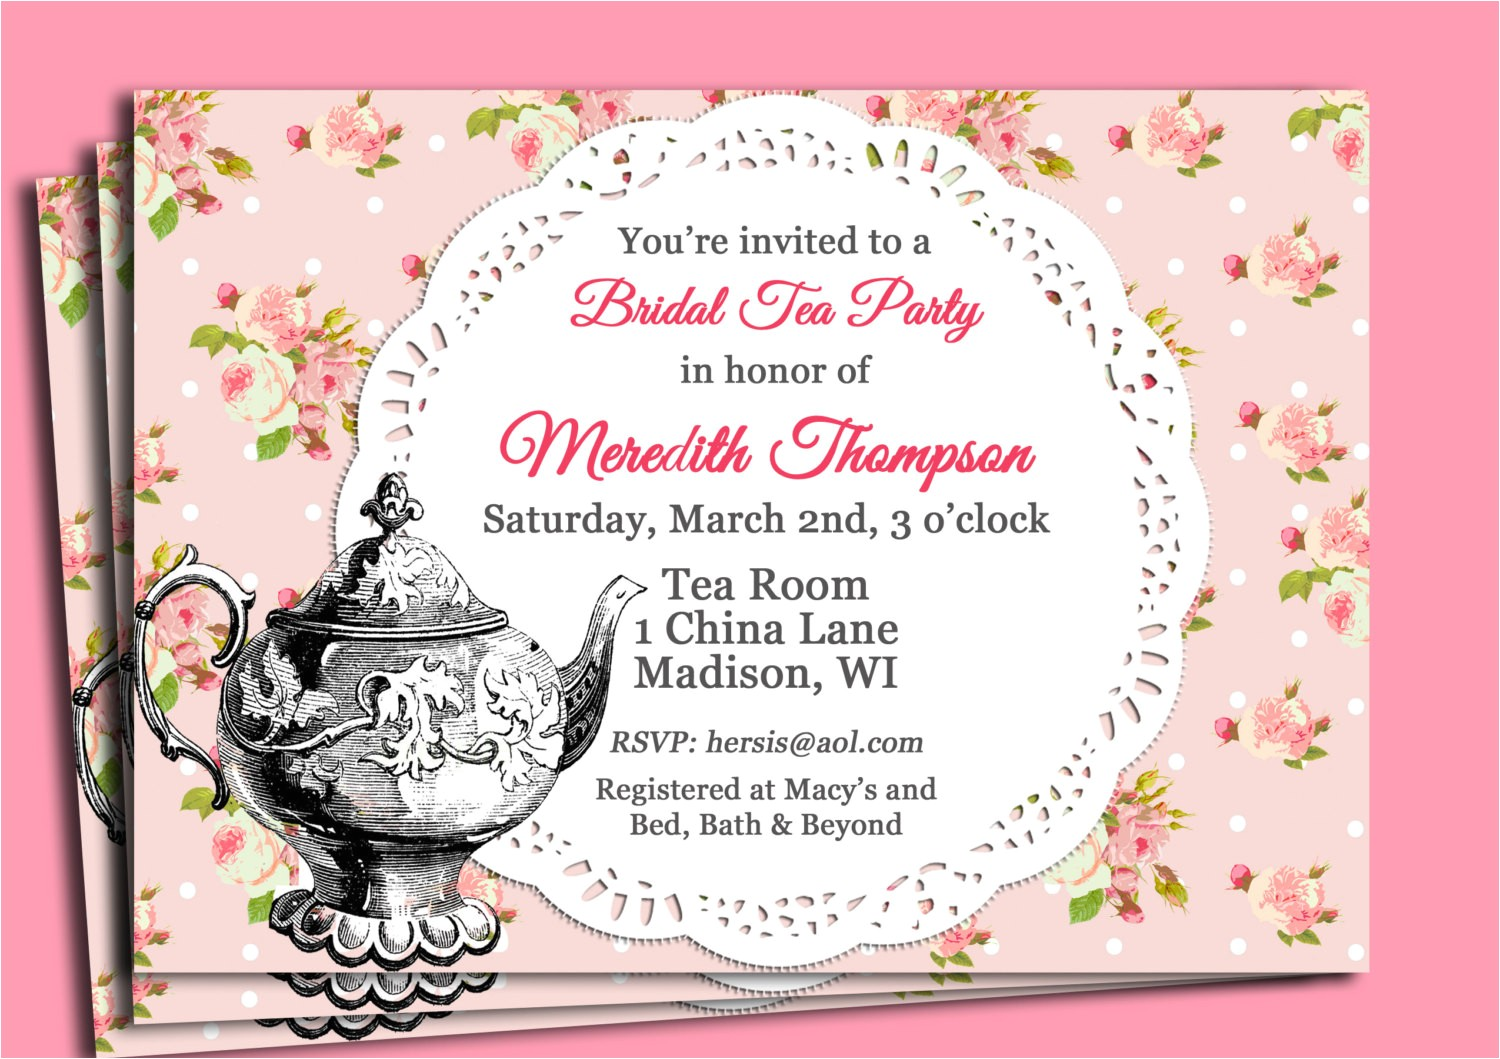 handmade tea party invitations card design tea party invitation ideas ctsfashion